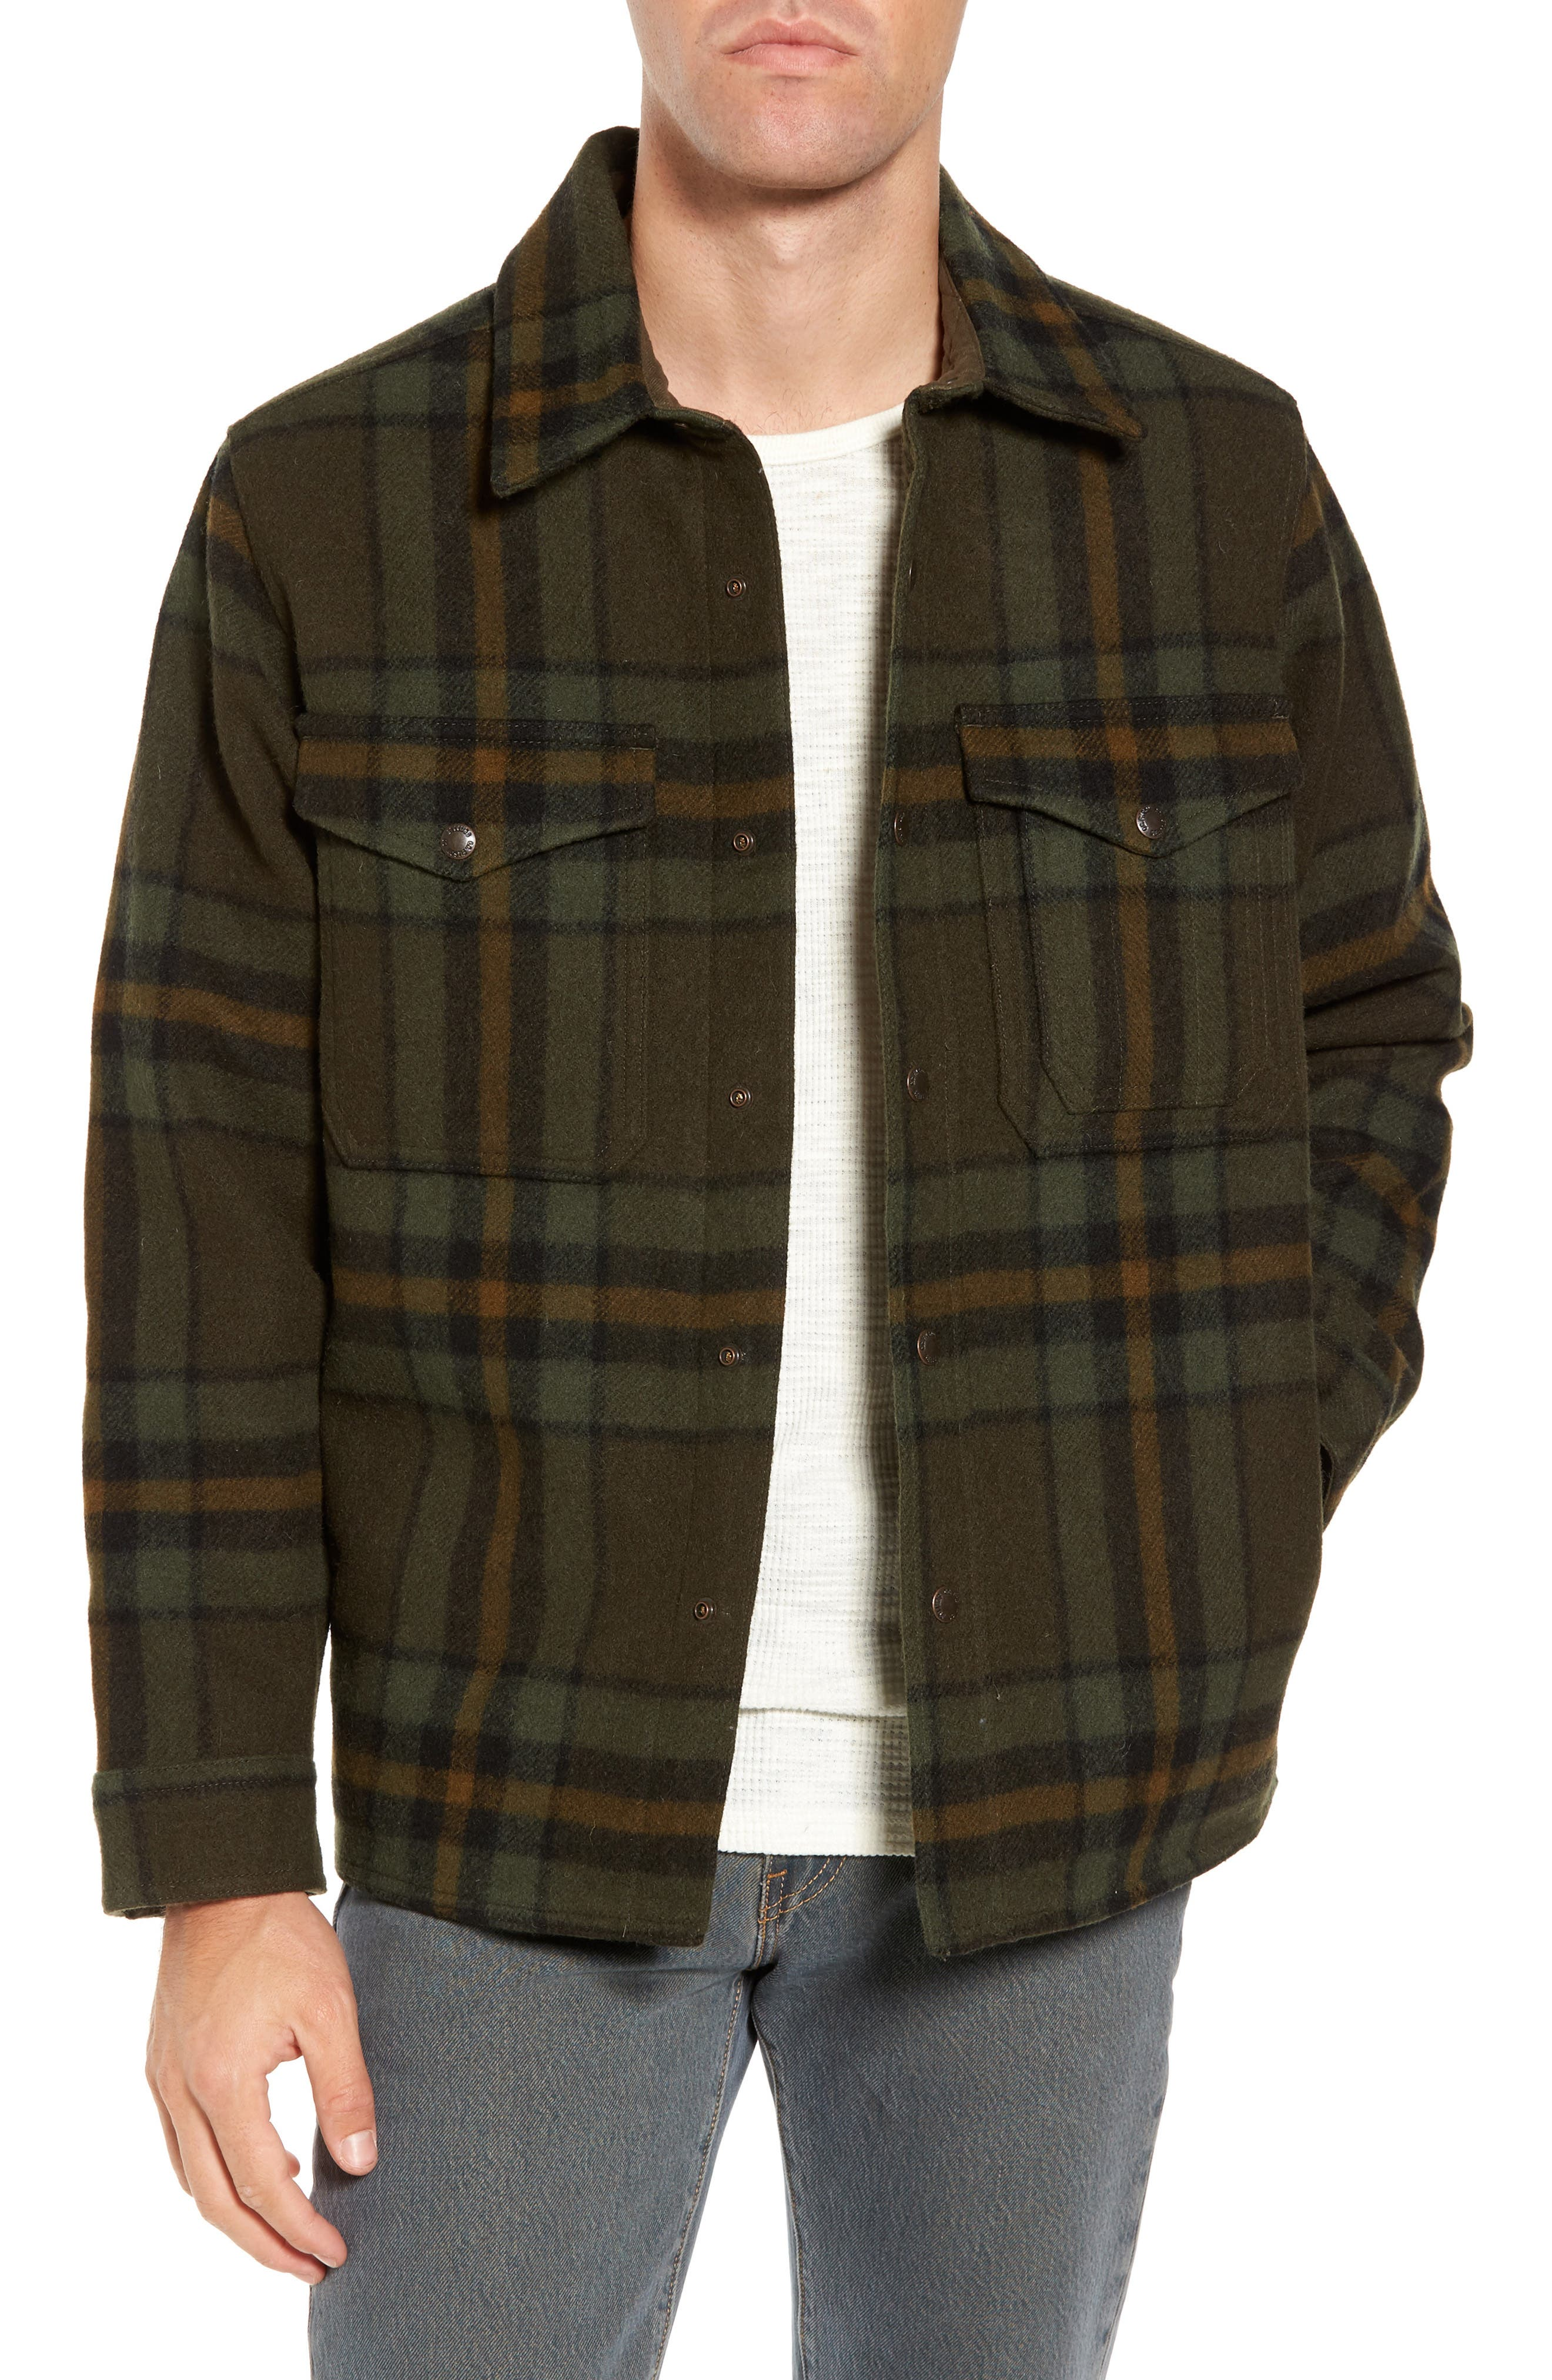 Alternate Image 1 Selected - Filson 'Macinaw' Plaid Wool Flannel Shirt Jacket